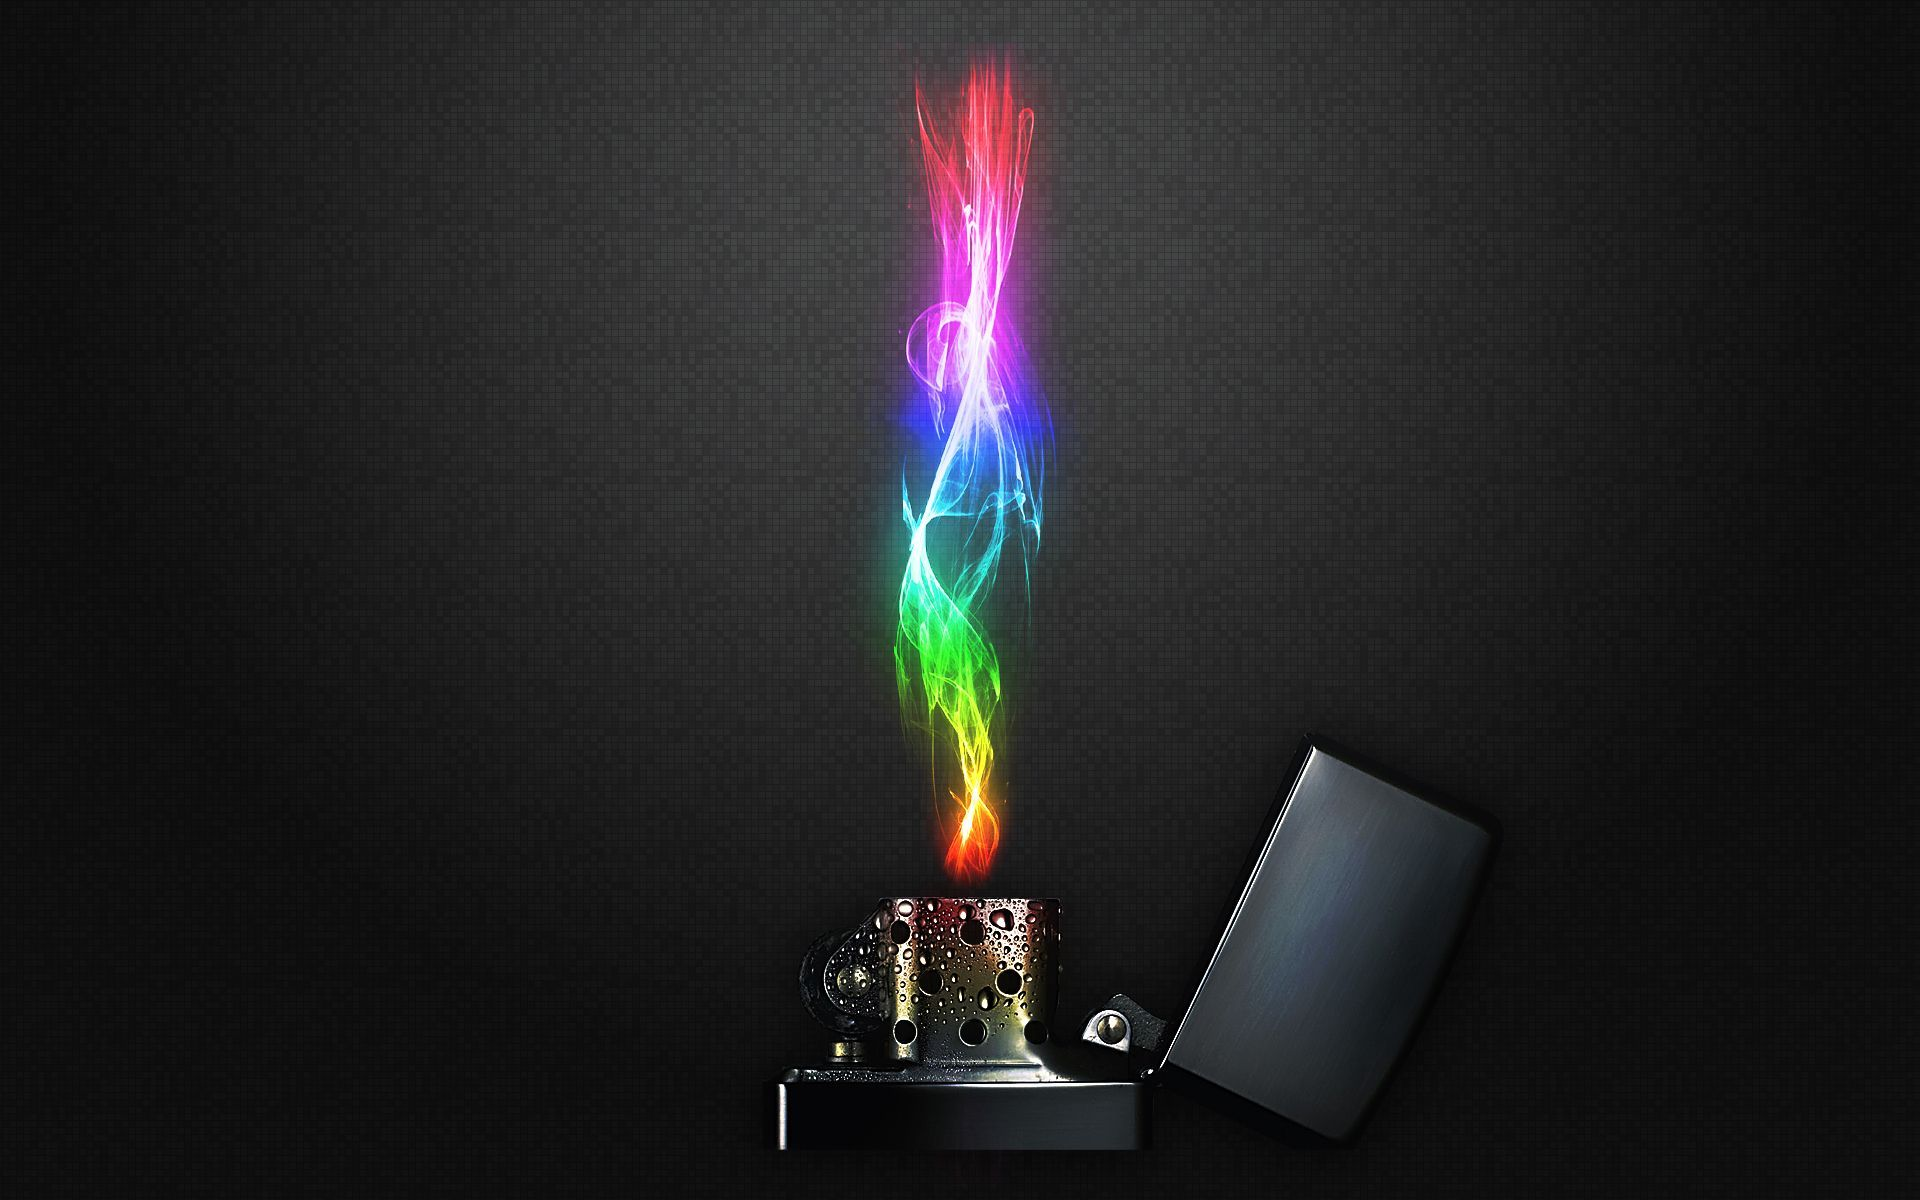 Cool Lighter Wallpaper